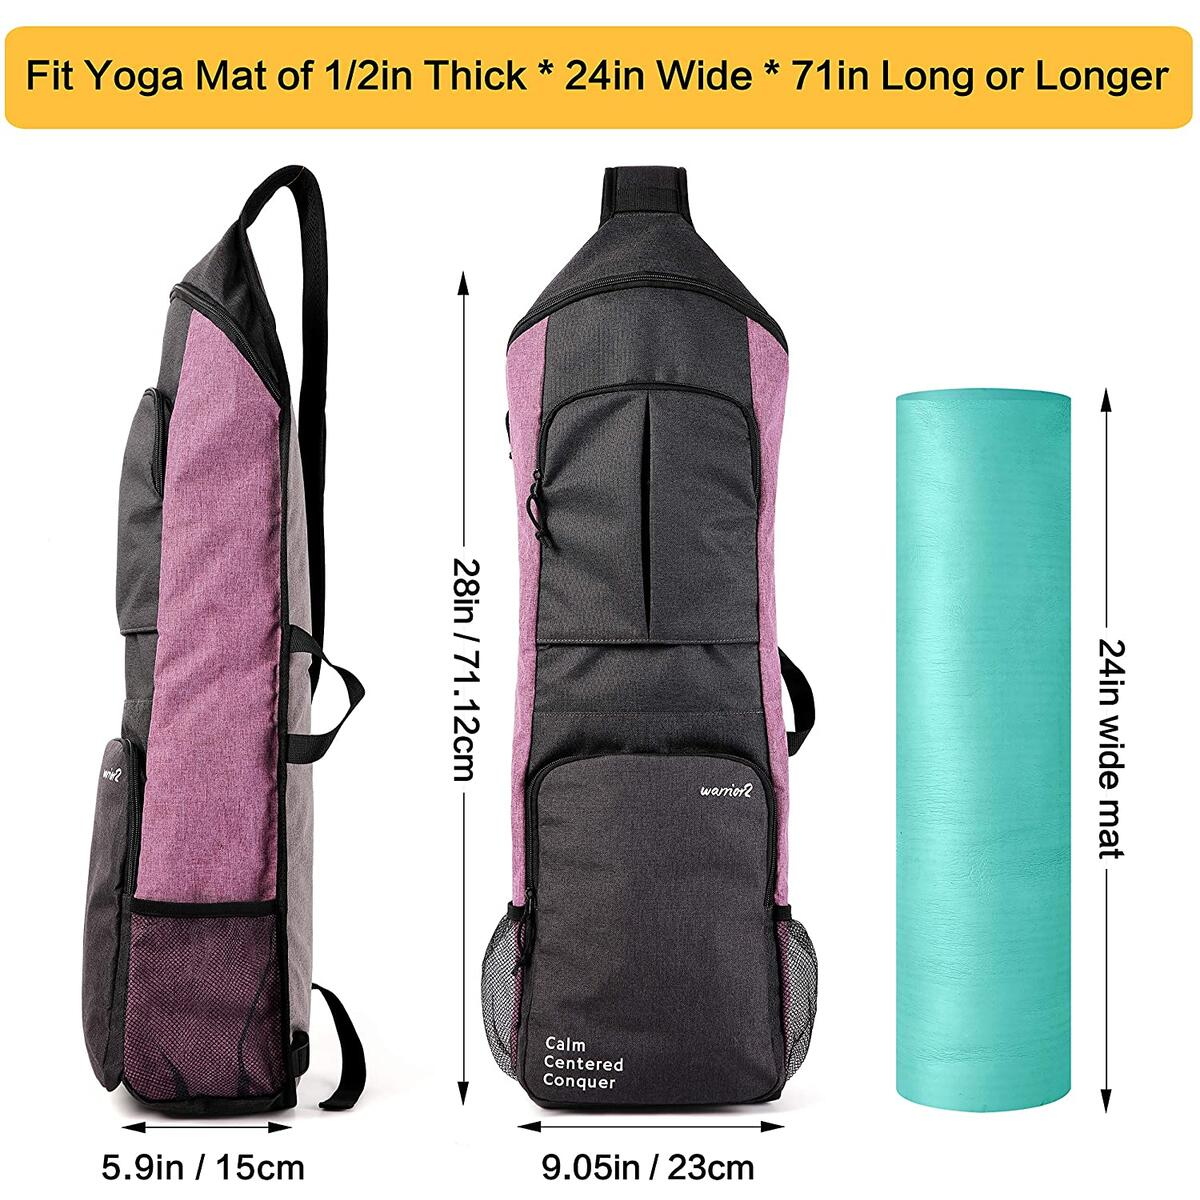 Warrior2 Yoga Mat Holder Carrier, Yoga Backpack Fits 1/2 Inch Thick Mat, Large Pockets & Water Bottle Holders | Full Zip Yoga Mat Carrying Bag for Women Men Yoga Gym Workout